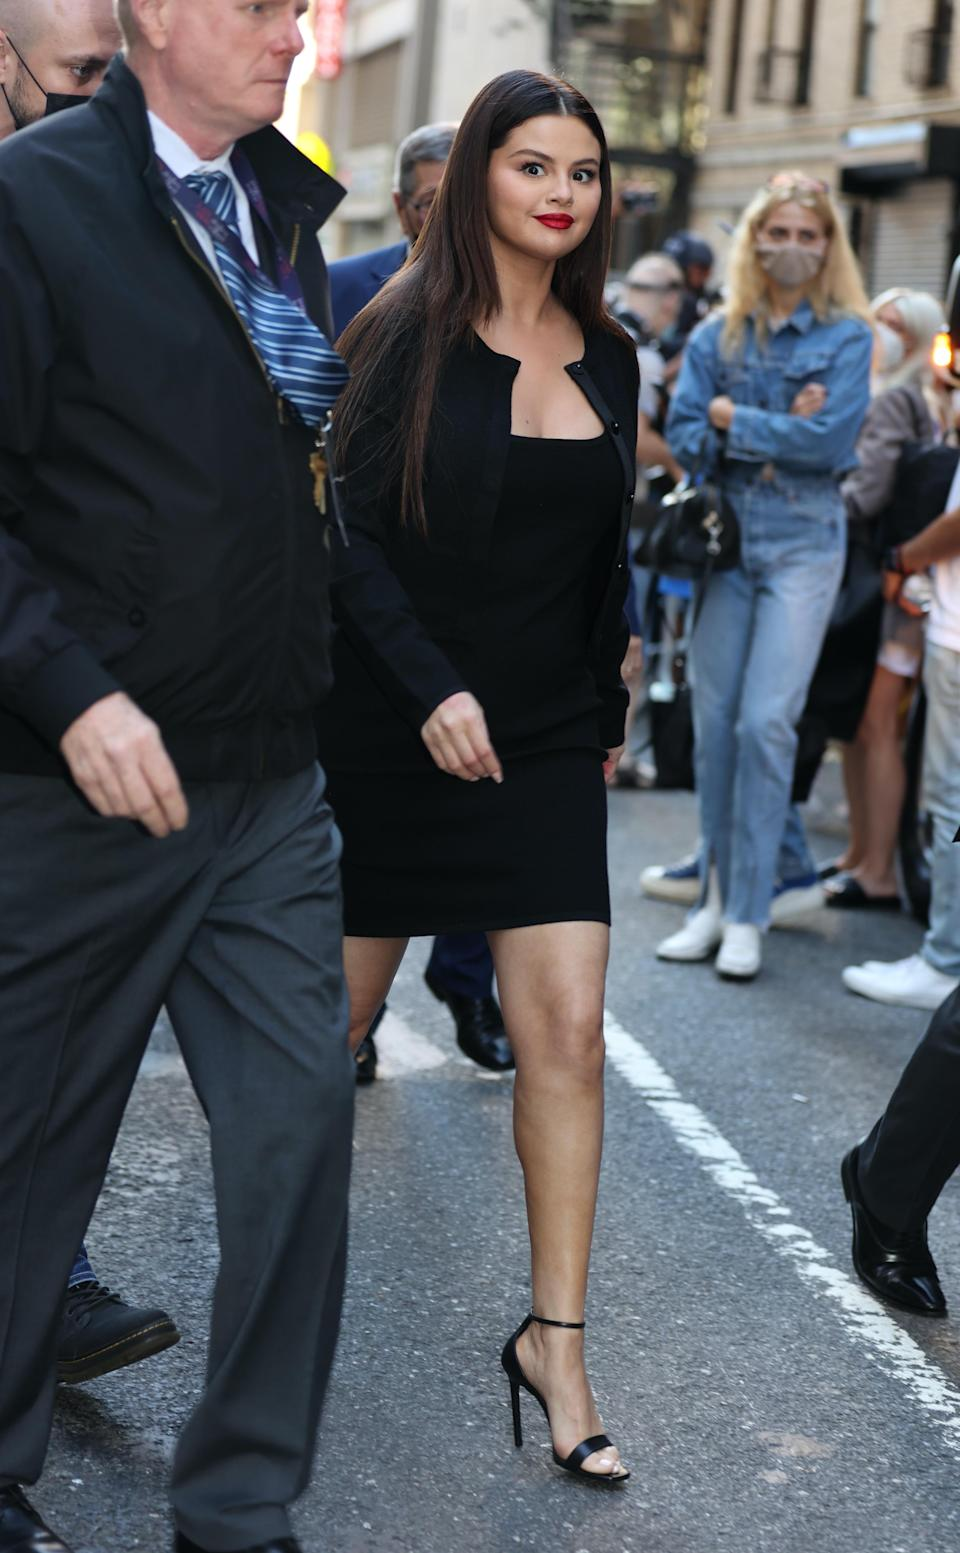 """Selena Gomez arrives at """"The Late Show with Stephen Colbert"""" in New York City. - Credit: Jose Perez / SplashNews.com"""